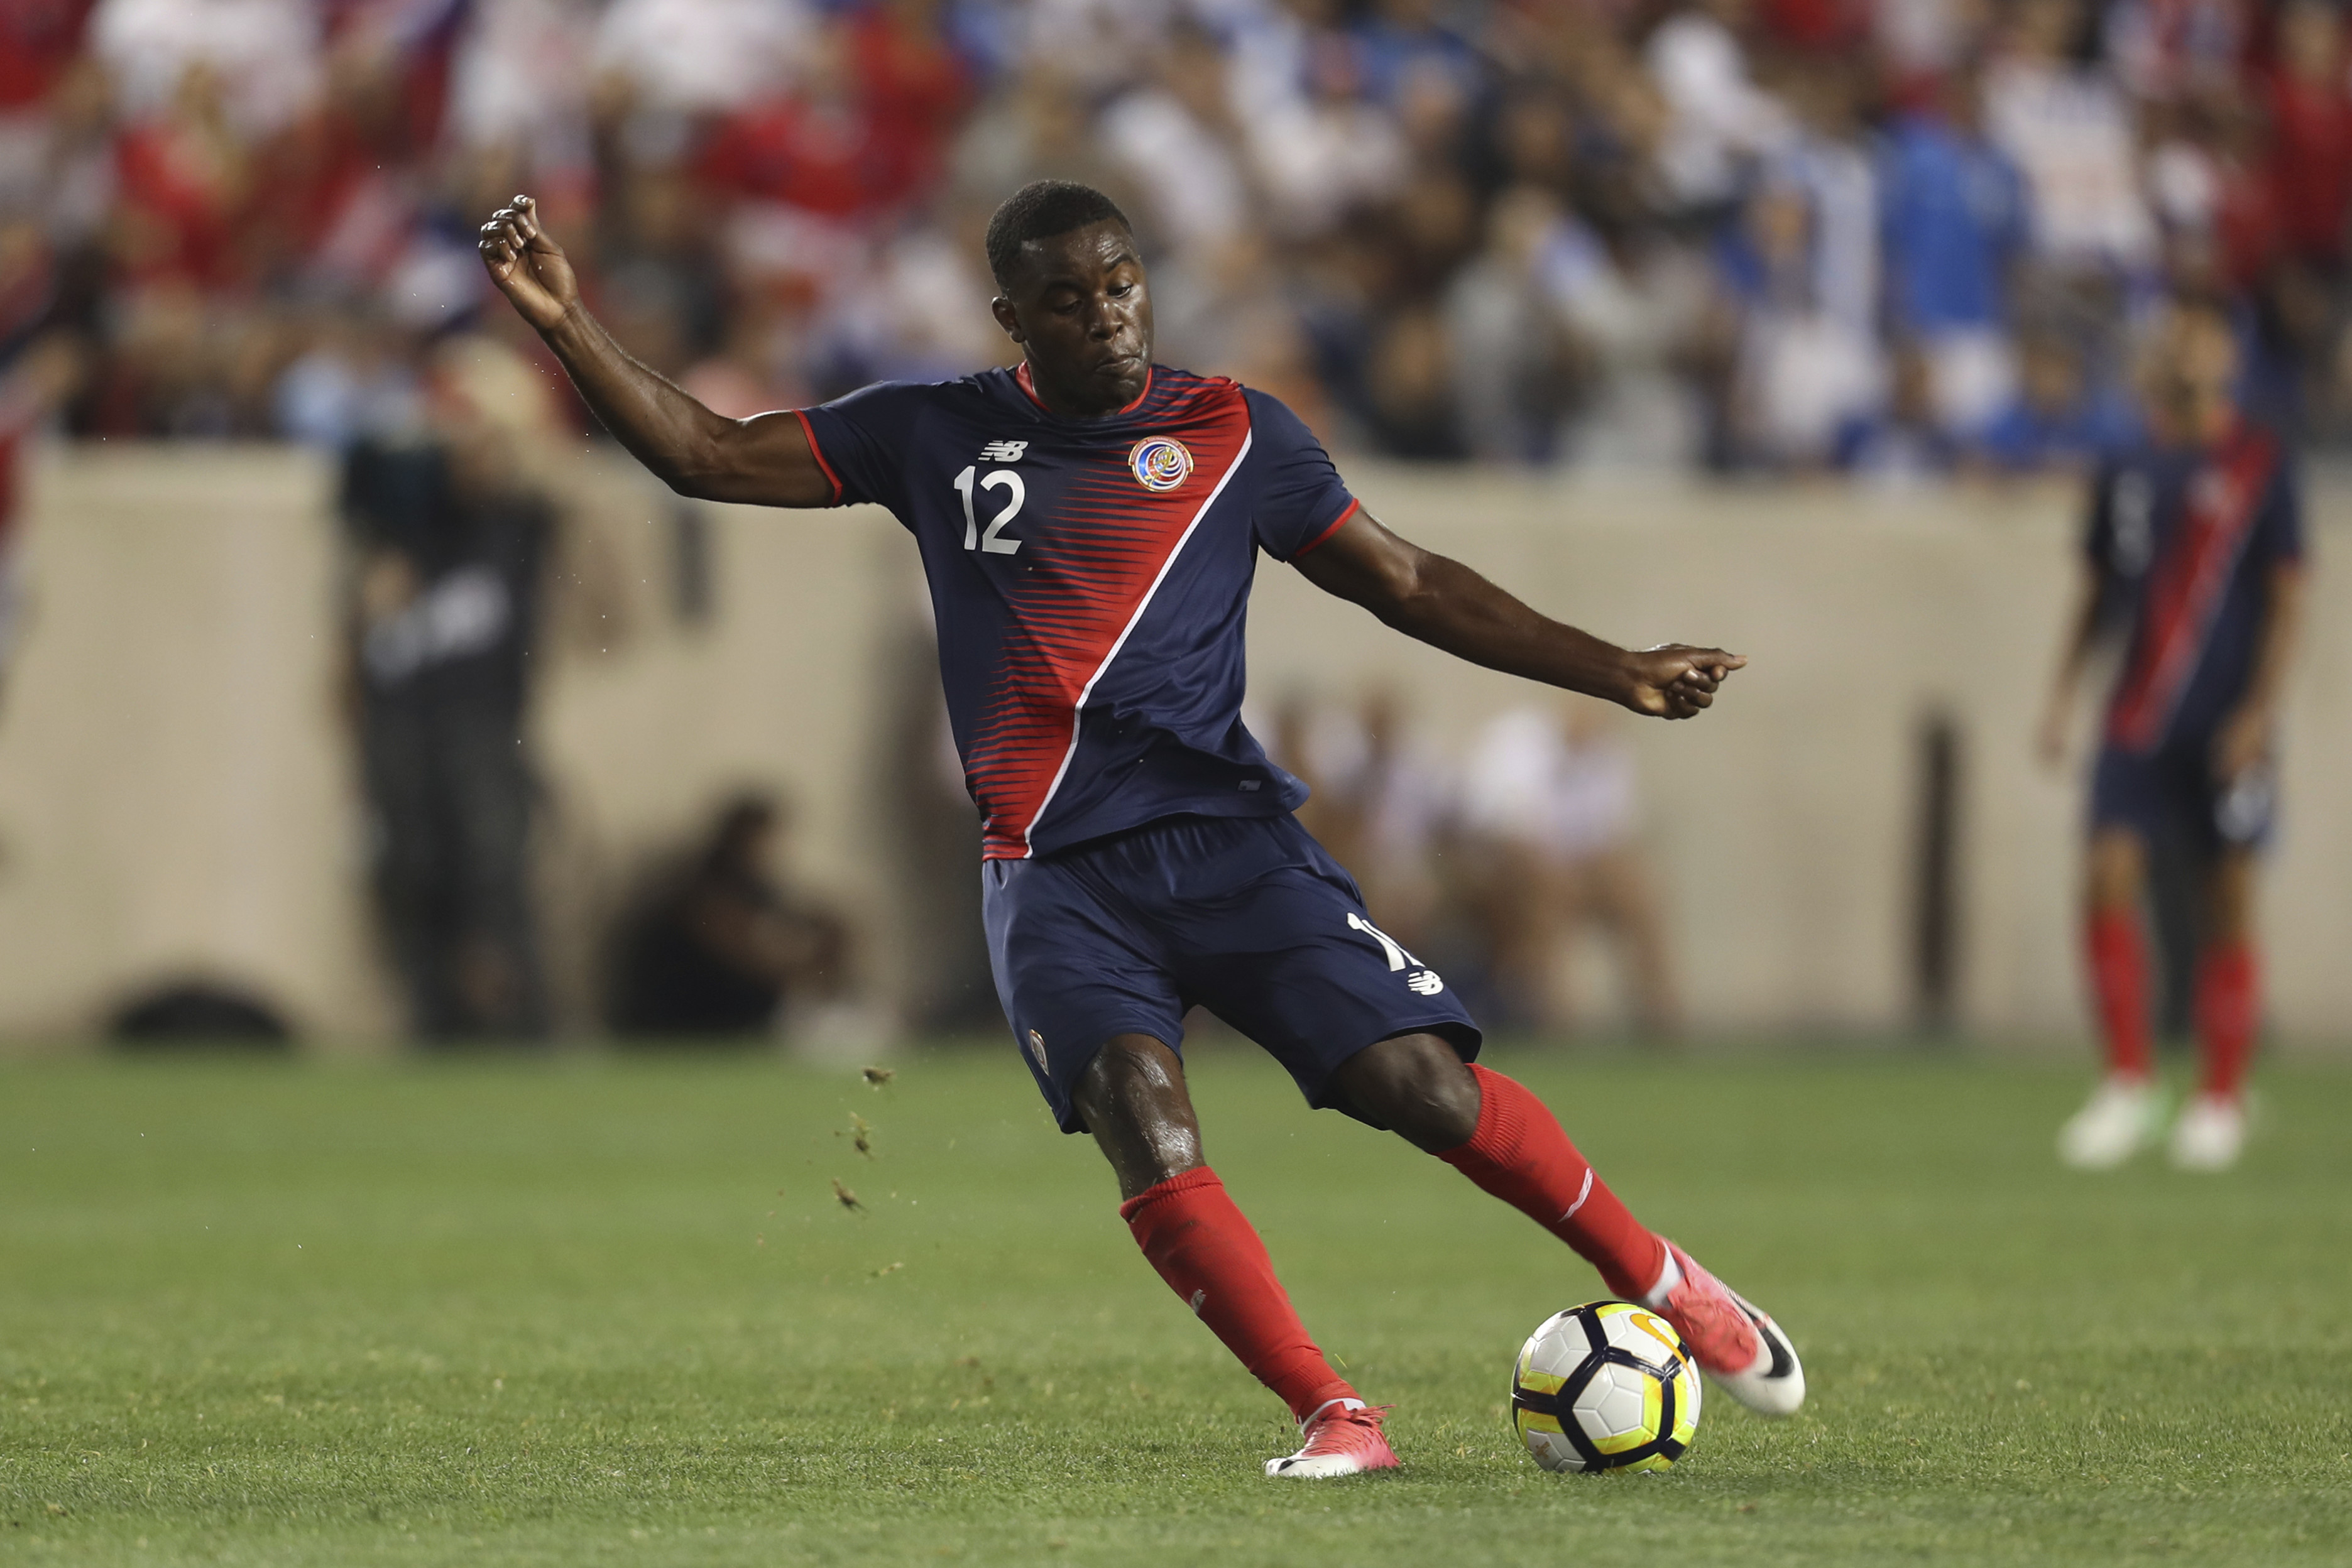 Costa Rica World Cup Fixtures, Squad, Group, Guide - World Soccer